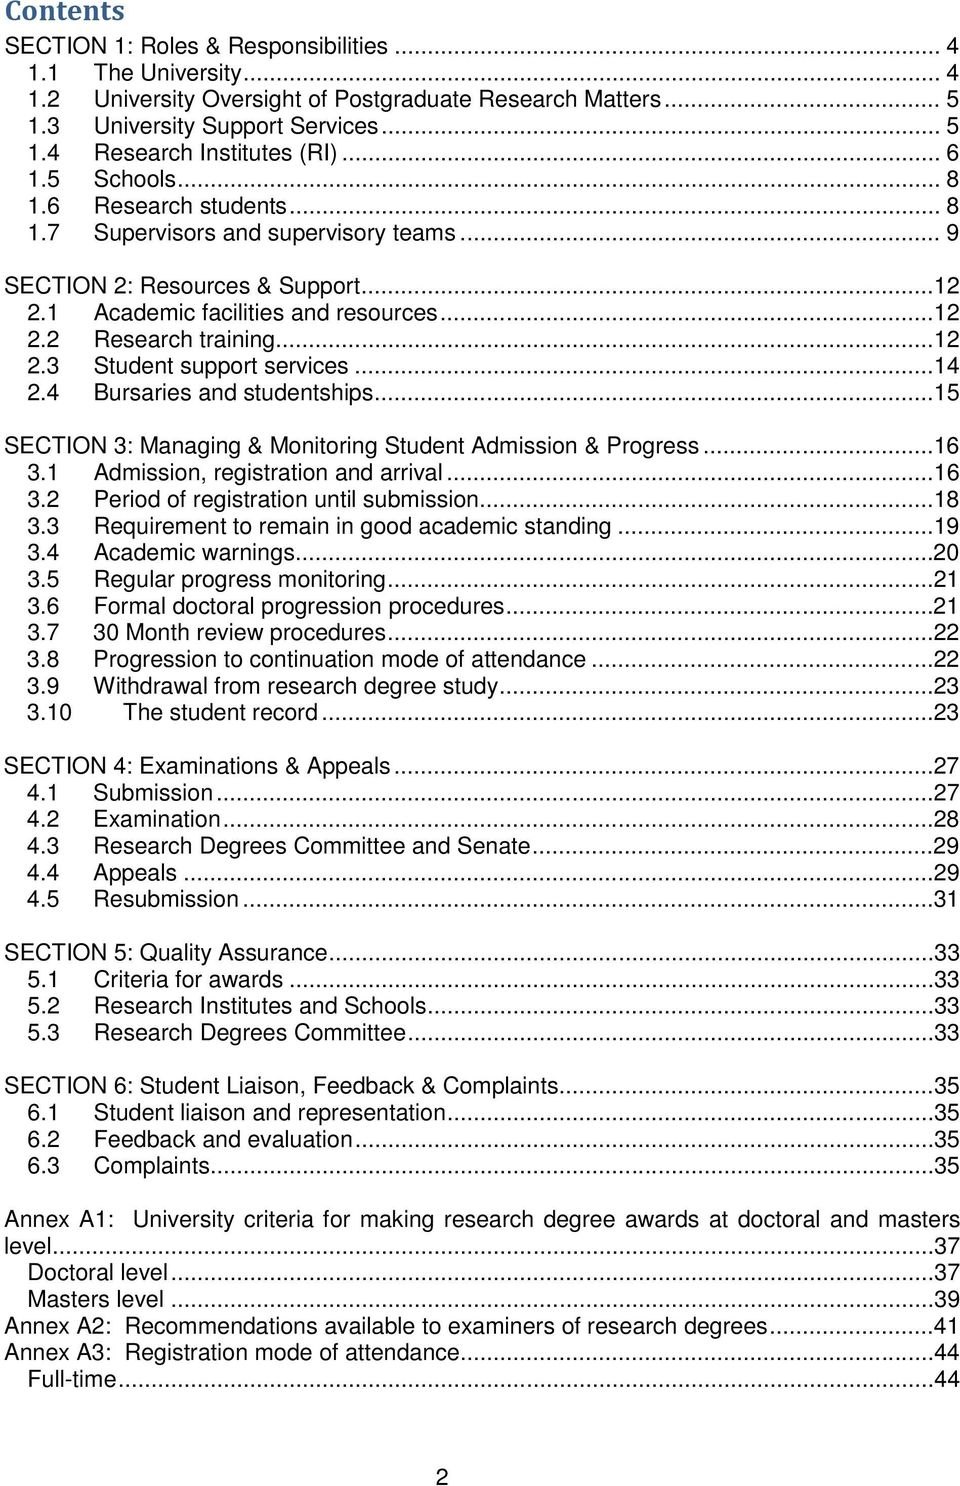 ..14 2.4 Bursaries and studentships...15 SECTION 3: Managing & Monitoring Student Admission & Progress...16 3.1 Admission, registration and arrival...16 3.2 Period of registration until submission.